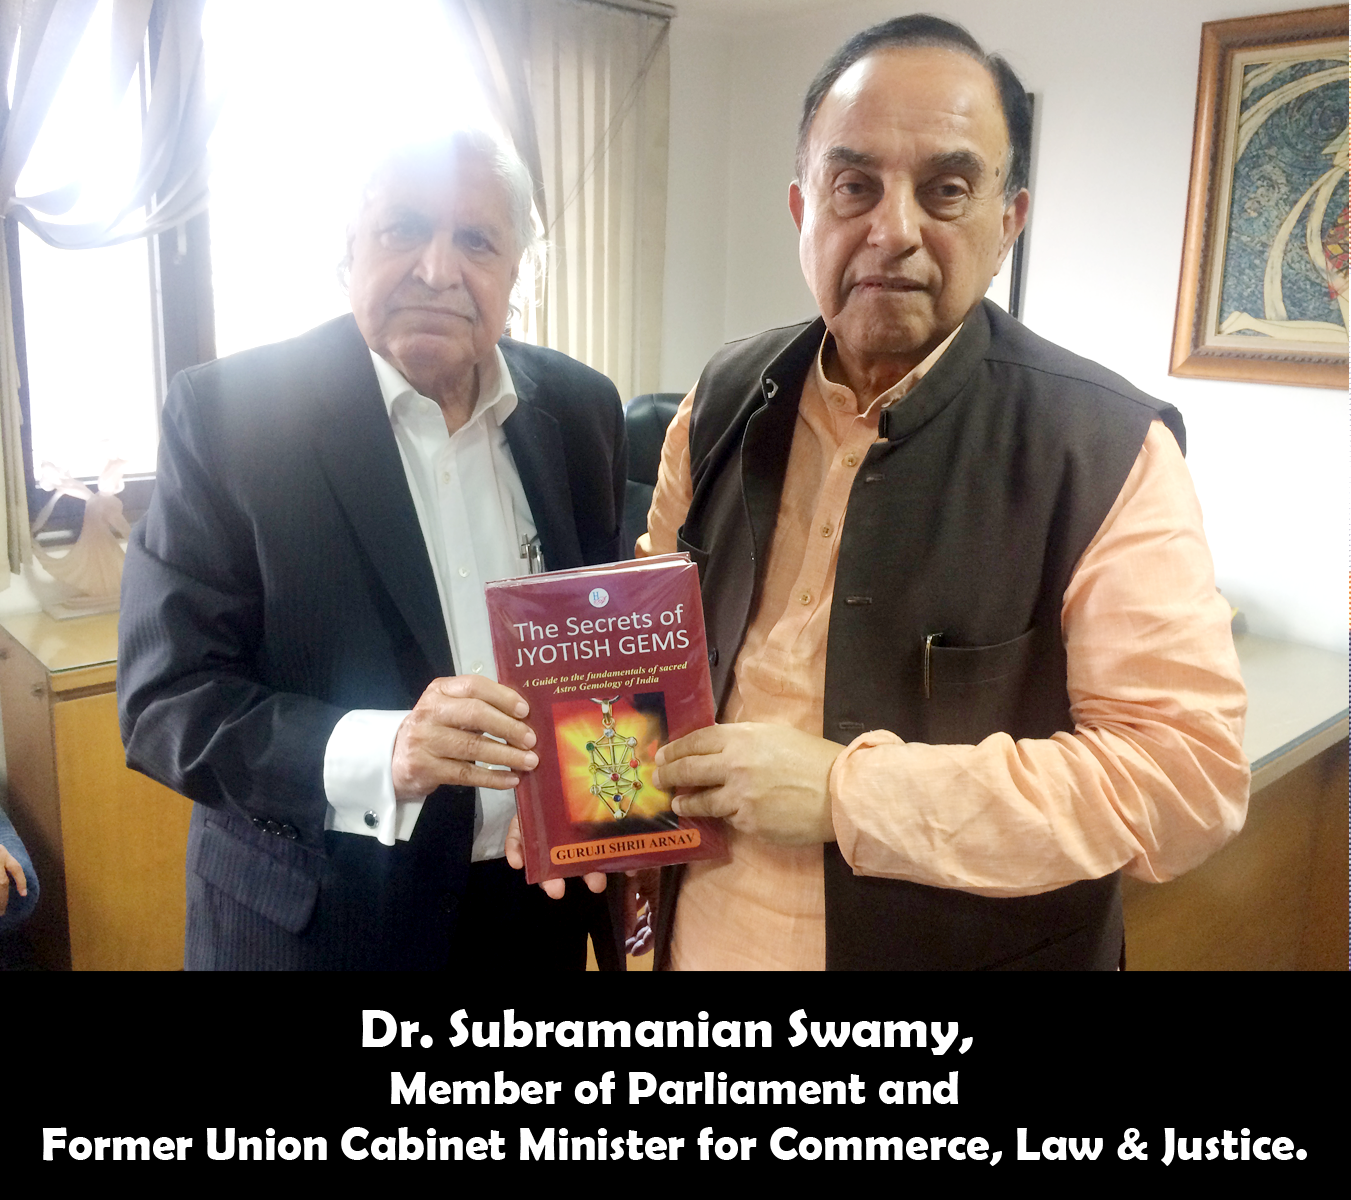 Dr. Subramanian Swamy,  Member of Parliament and Former Union Cabinet Minister for Commerce, Law & Justice releasing the secrets of Jyotish Gems